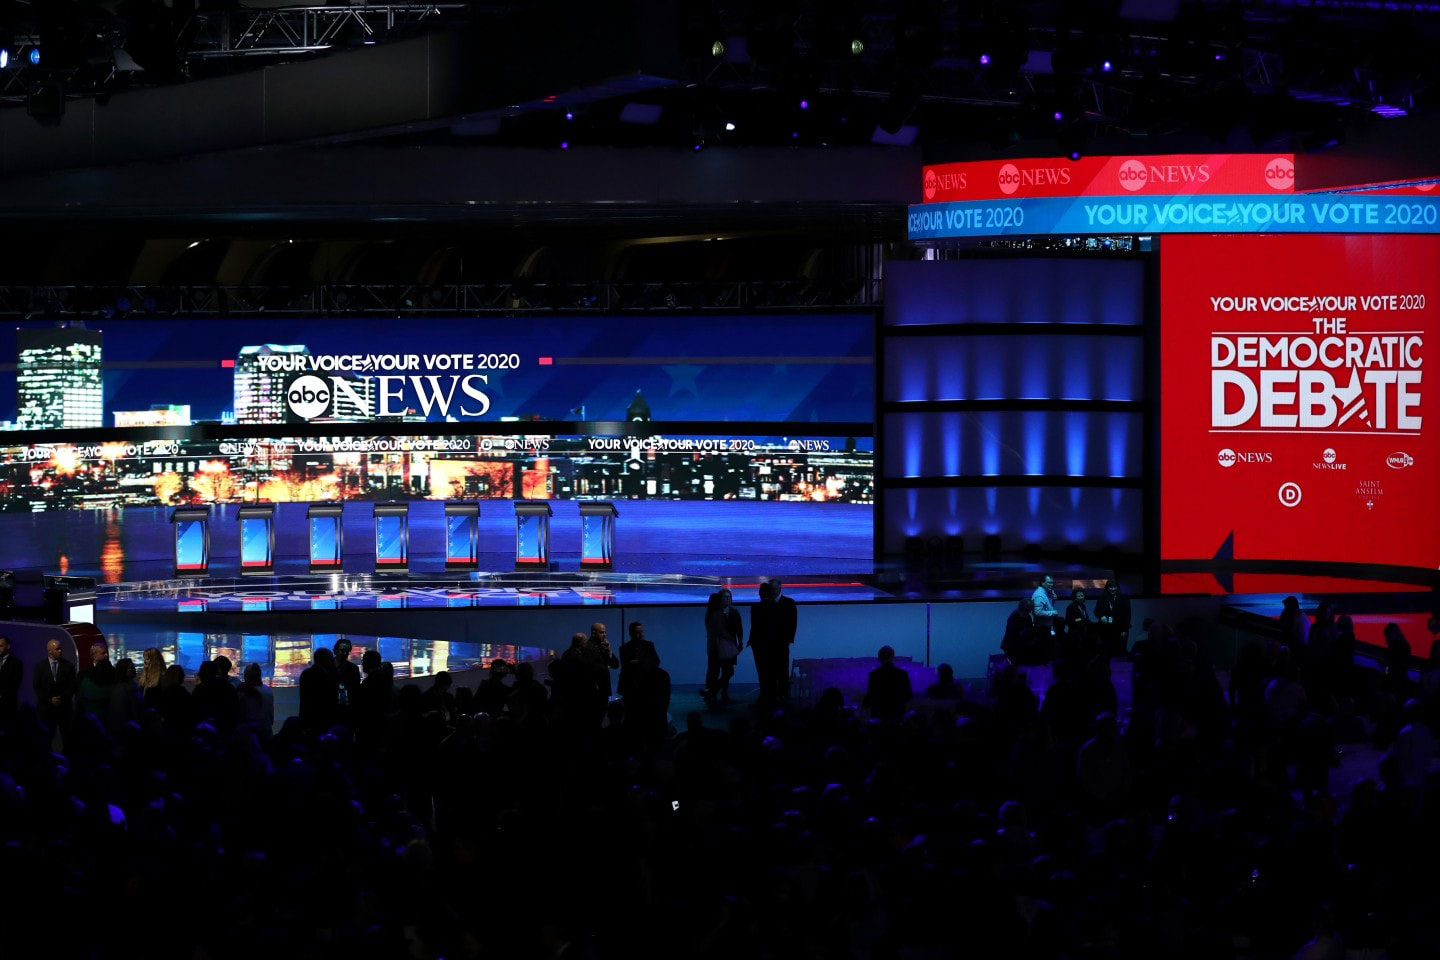 ABC News Democratic Debate, New Hampshire : screen design by K Brandon Bell